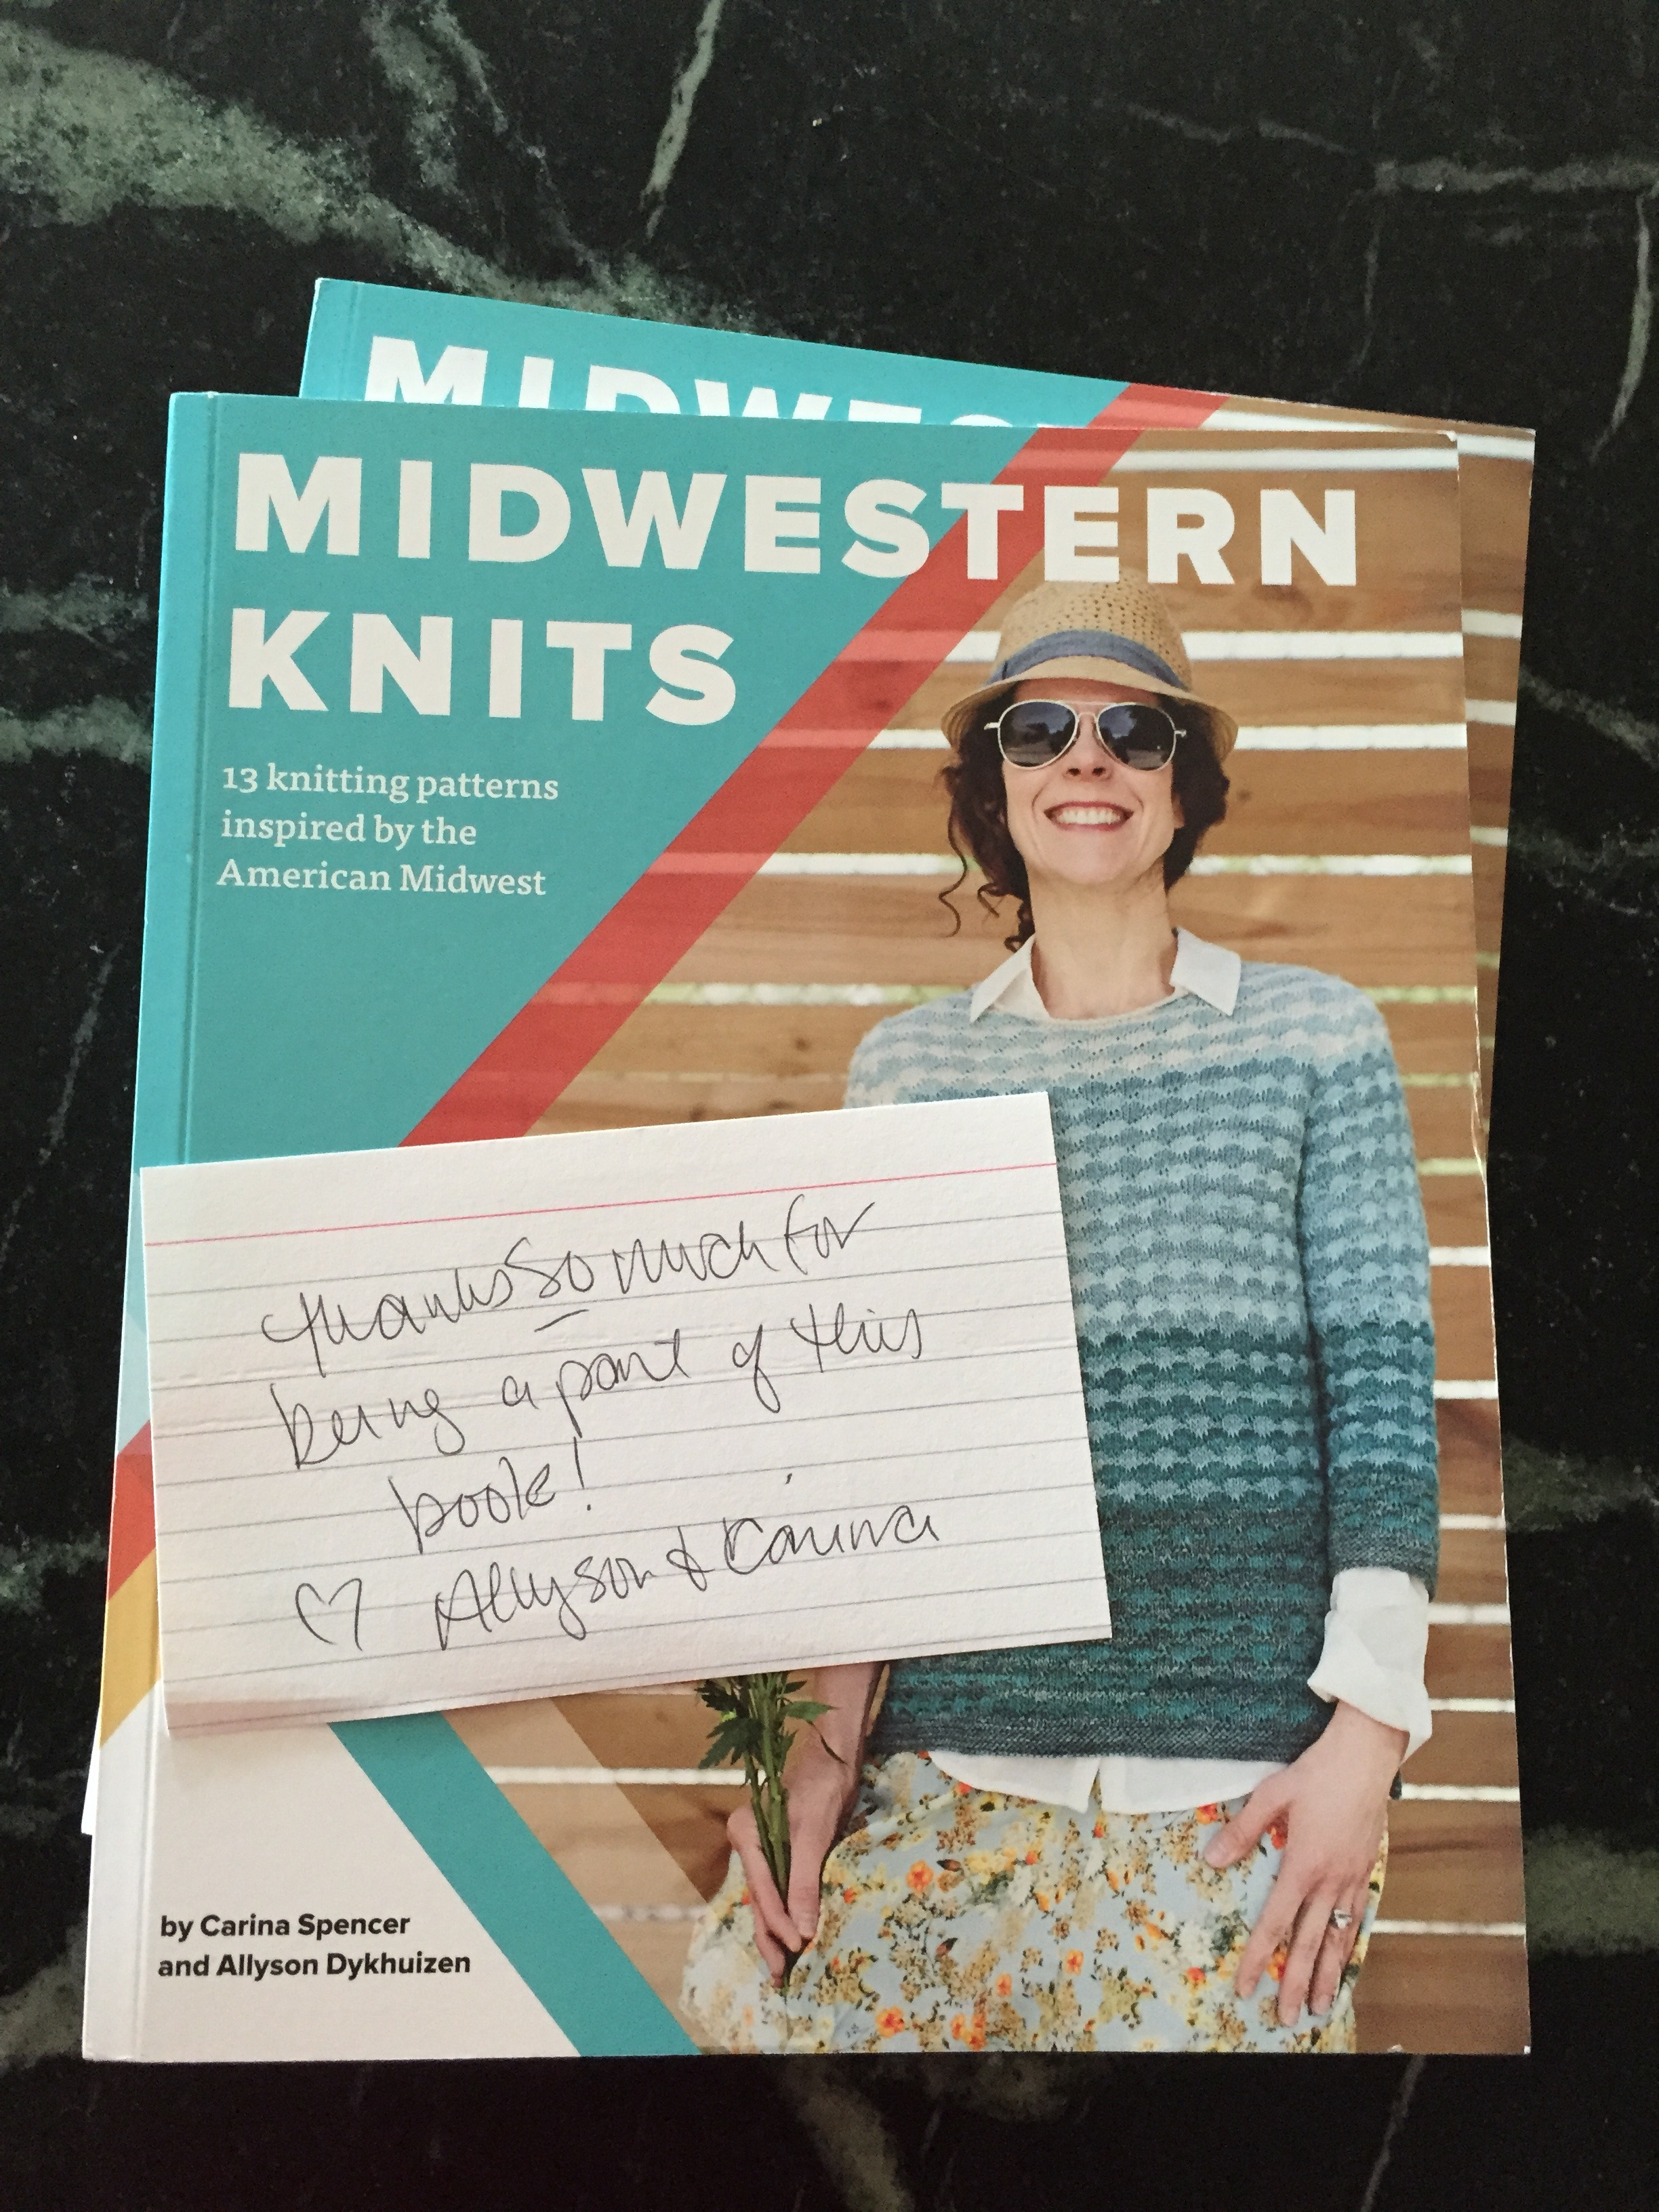 My first copies of Midwestern Knits